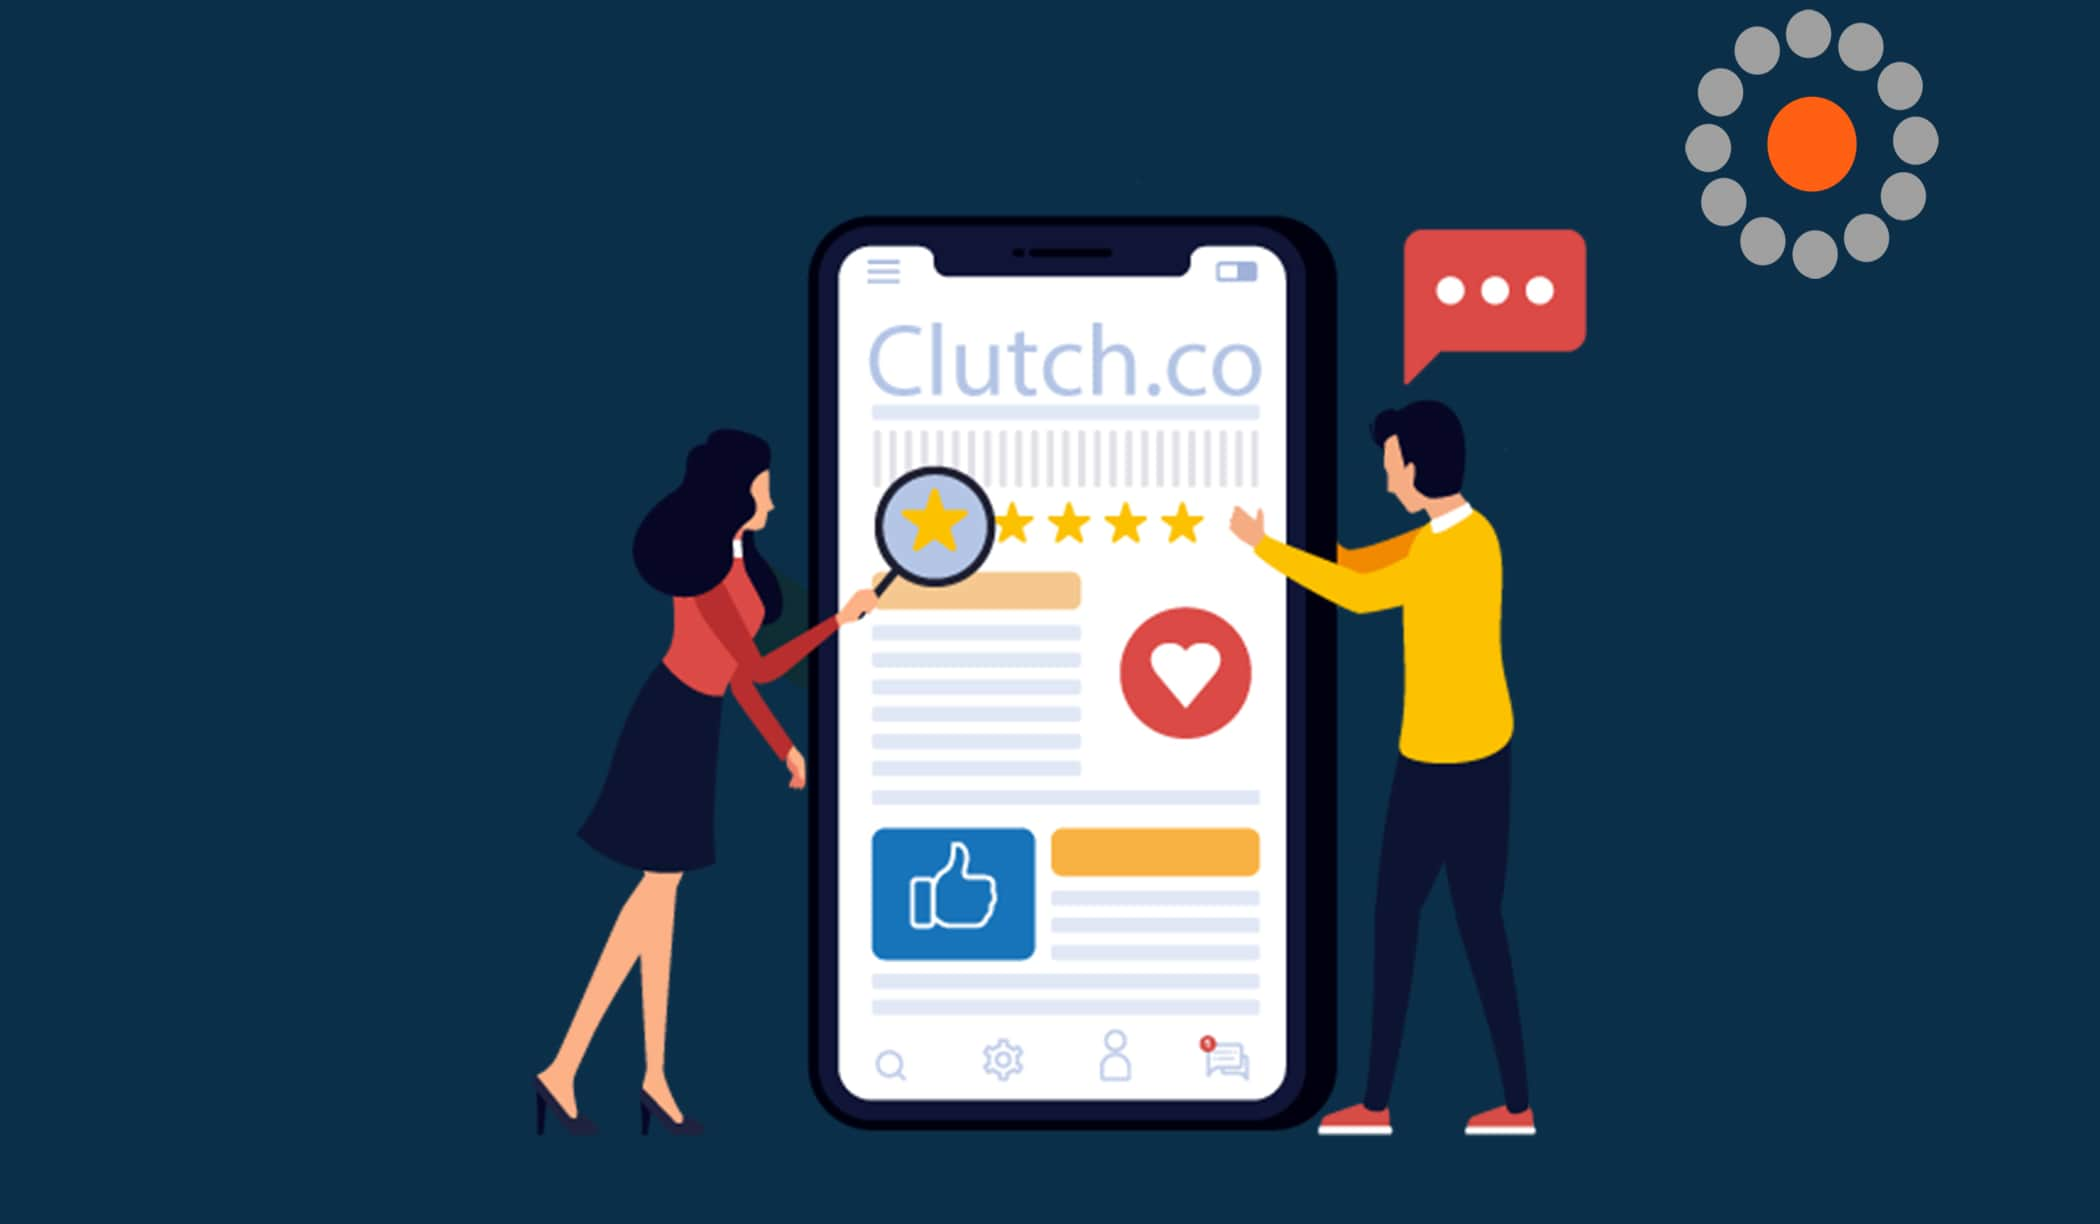 cleverti Acquires Another 5-Star Feedback on B2B Platform Clutch